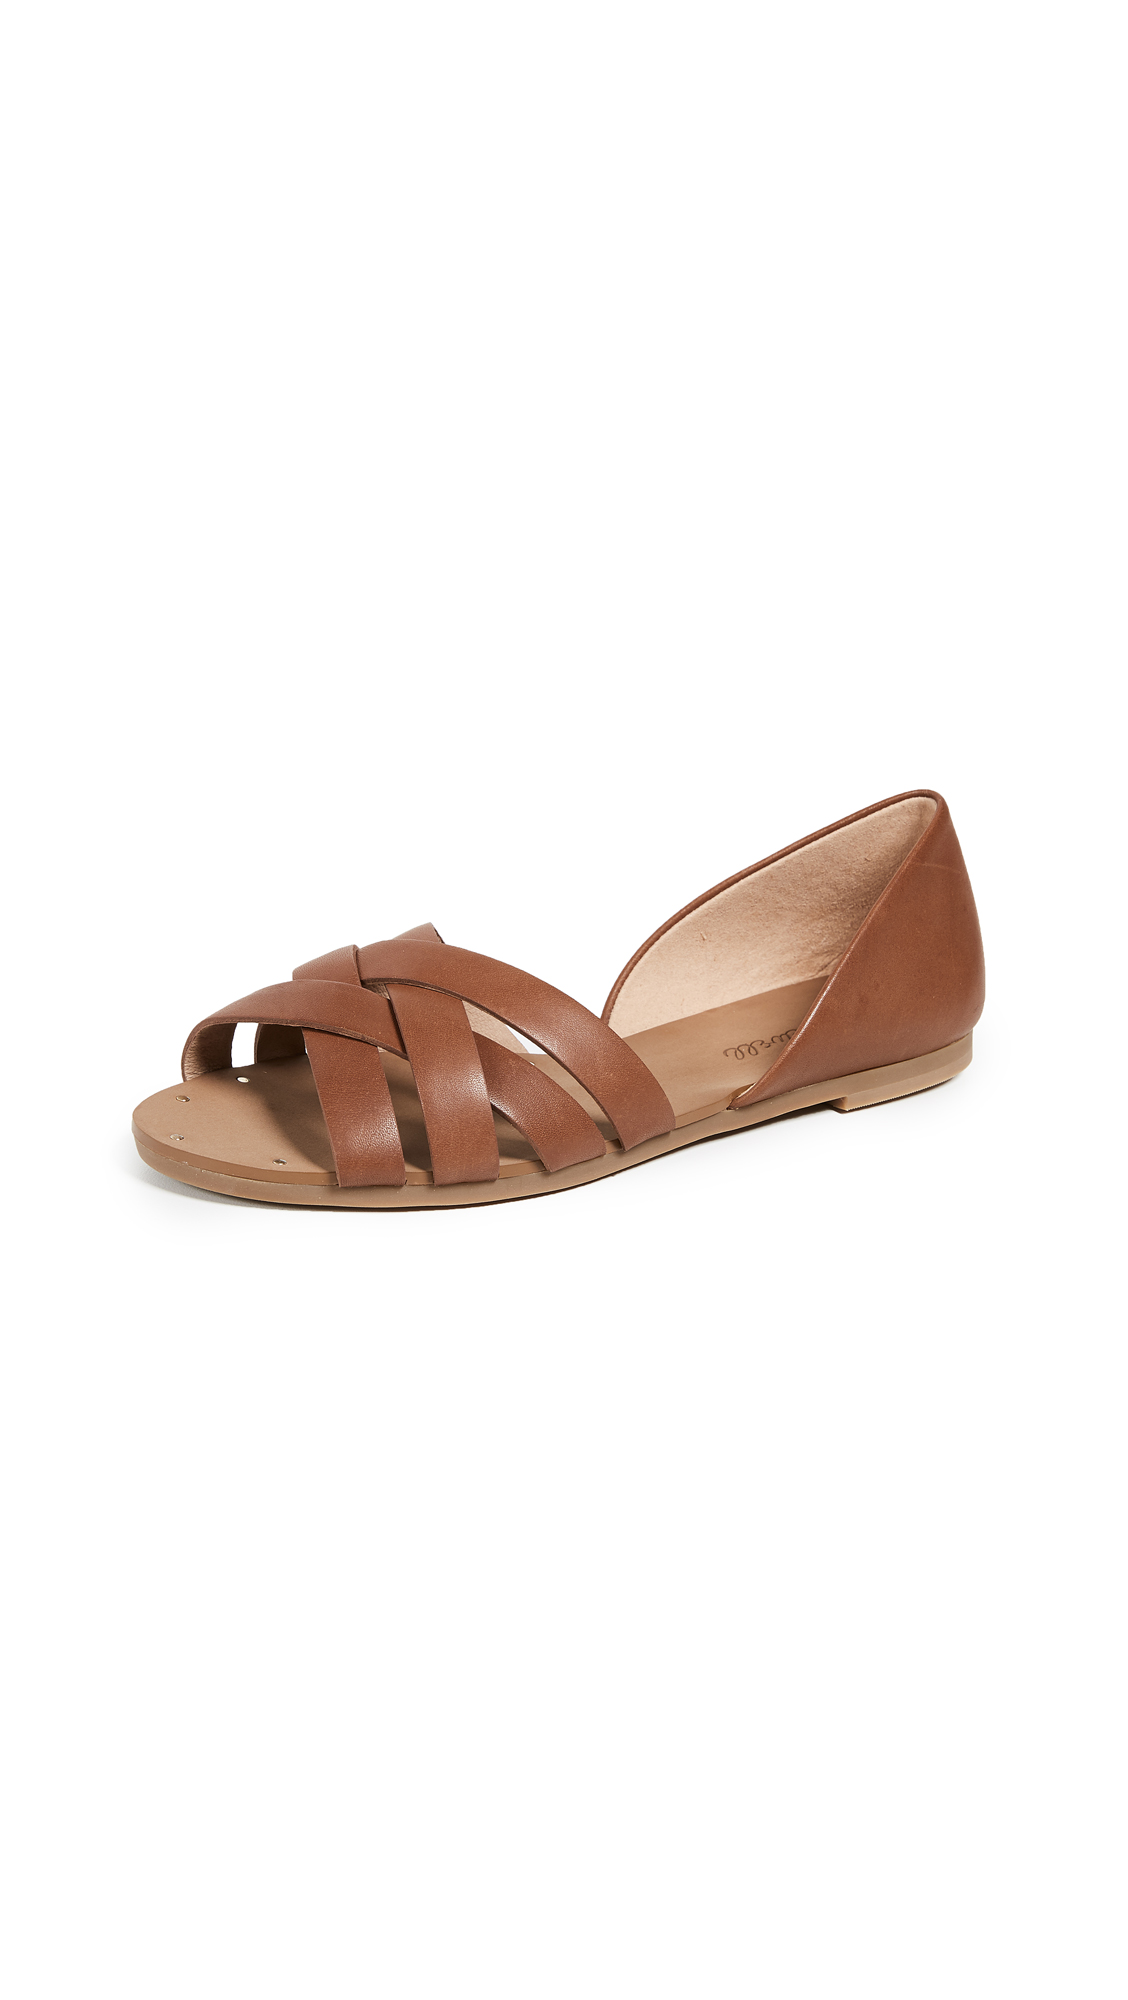 Madewell The Donovan Sandals - English Saddle